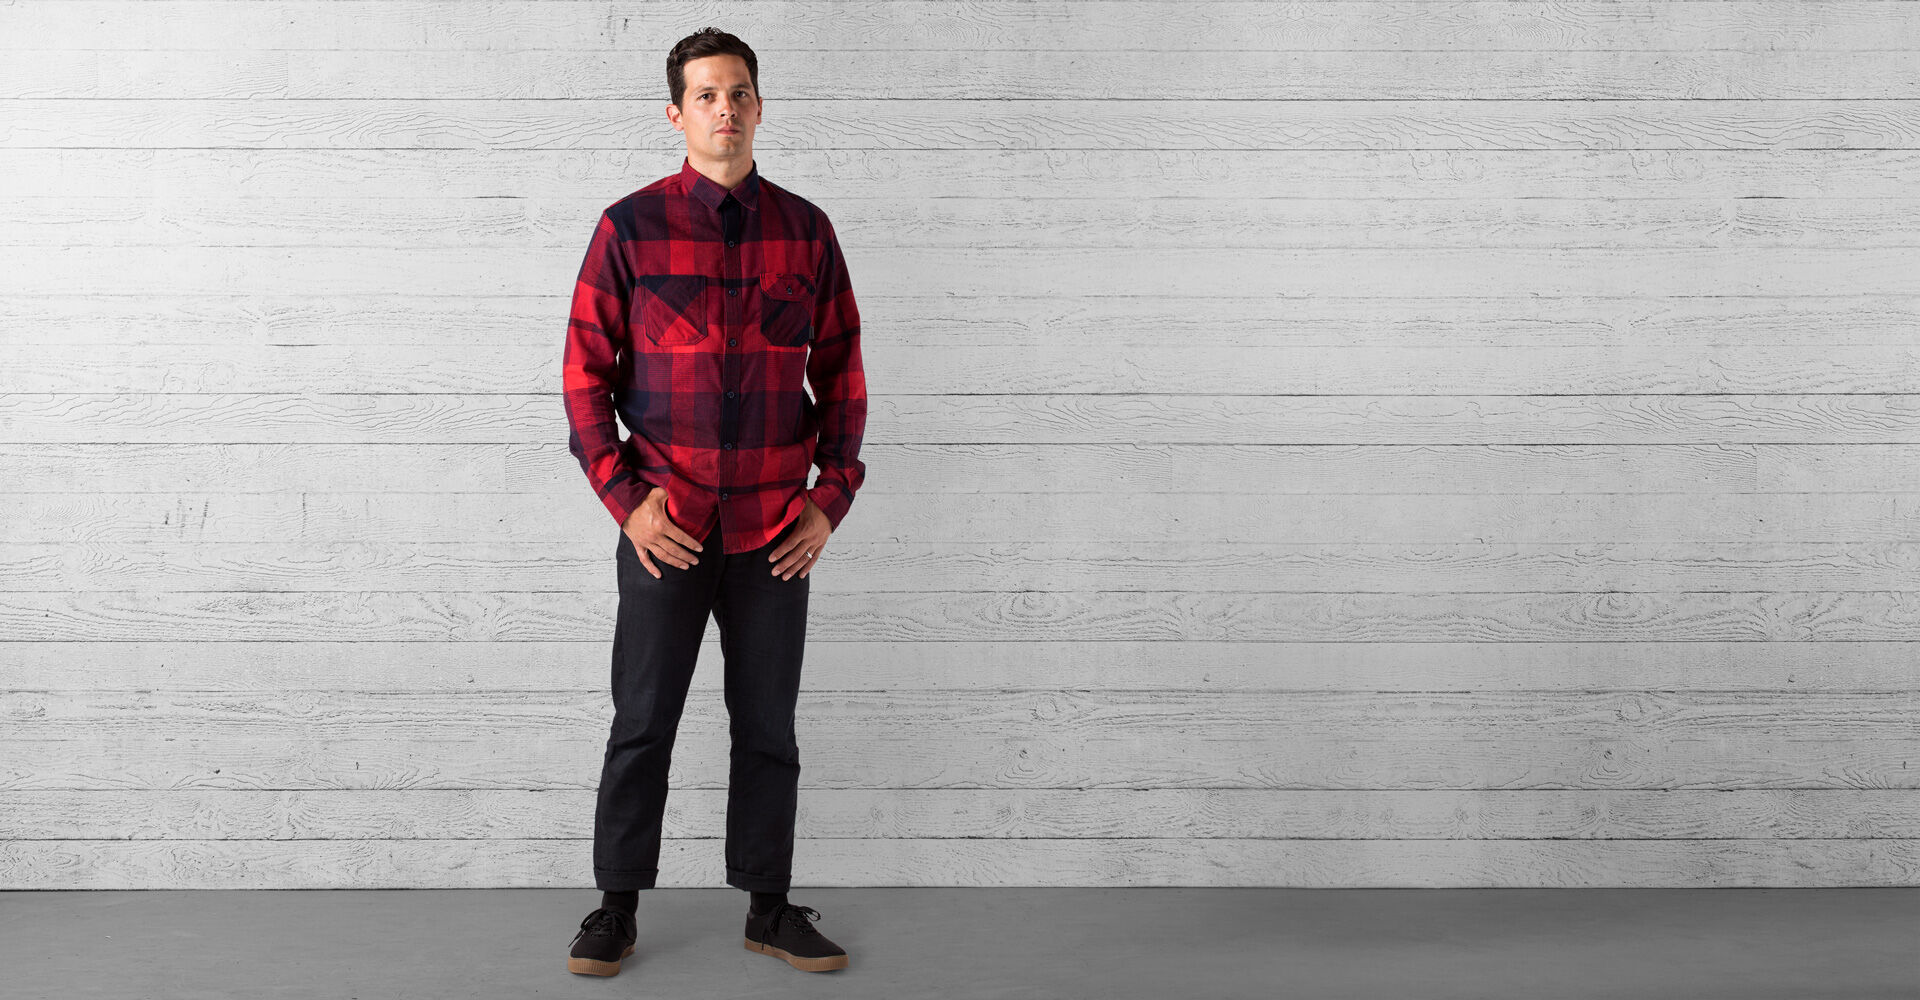 Woven Workshirt in Red / Navy Plaid - wide view.